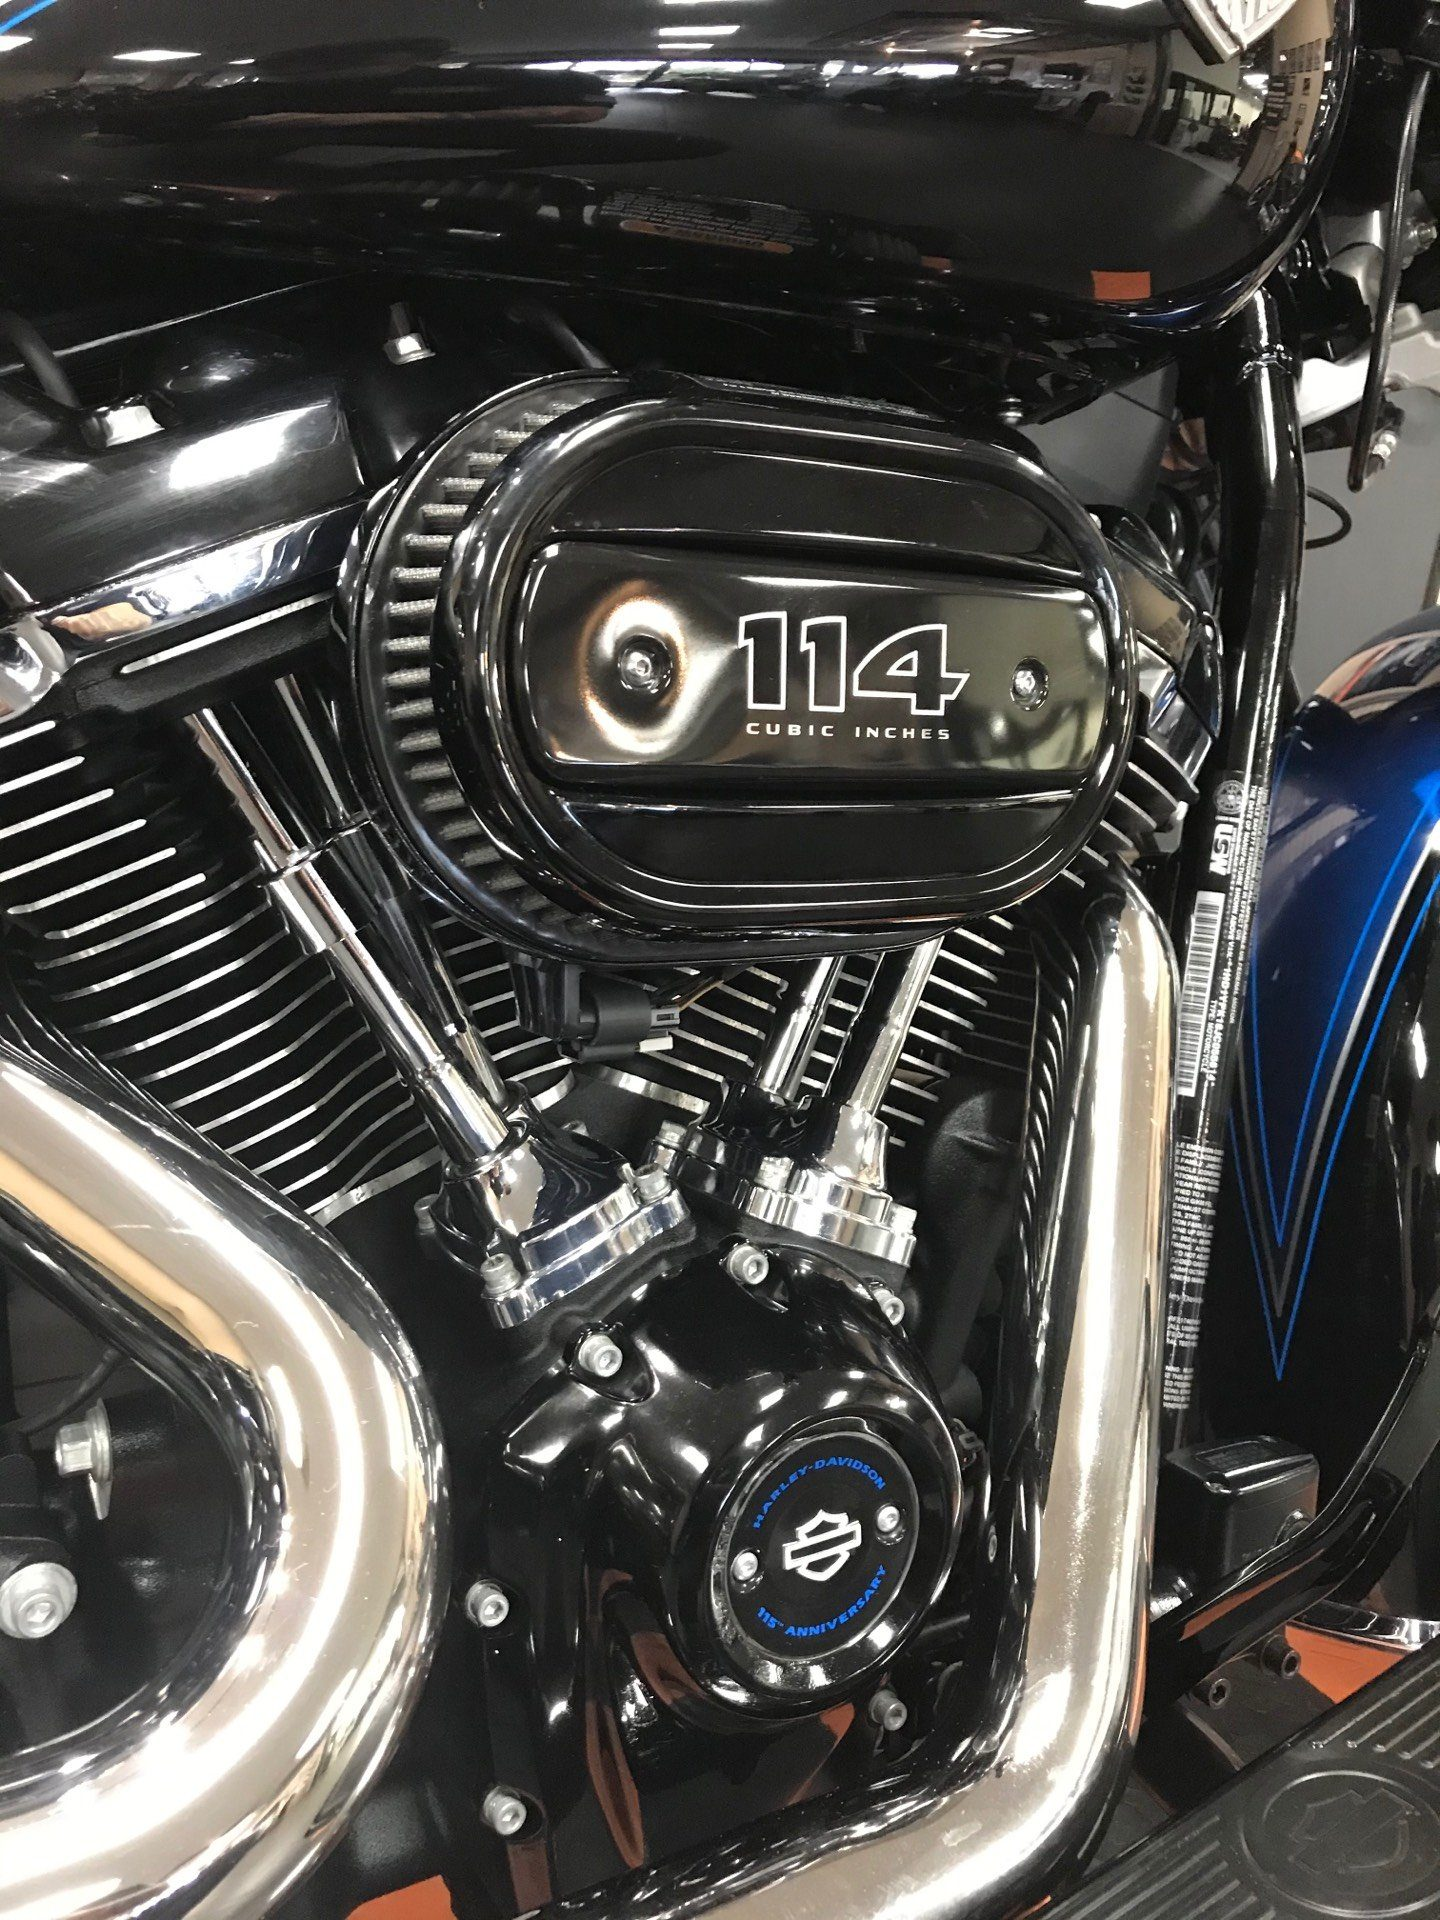 2018 Harley-Davidson Heritage Classic 114 in The Woodlands, Texas - Photo 12